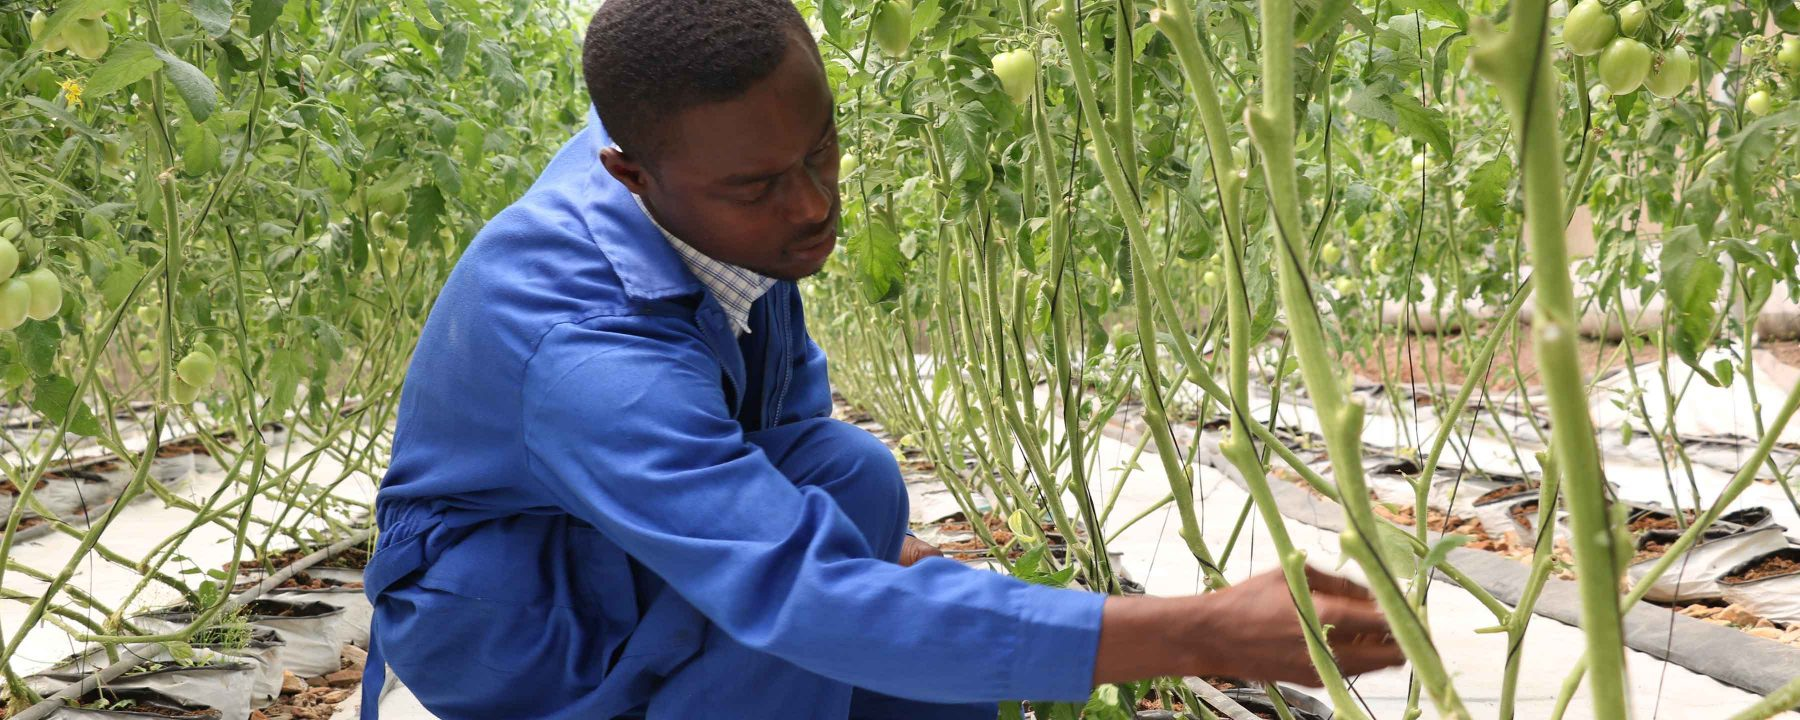 Prince Kofi Boateng, an Africa Lead Agribusiness Leadership Internship Program (A-LEAP) intern pruning a tomato plant at a greenhouse he manages for a host institution.